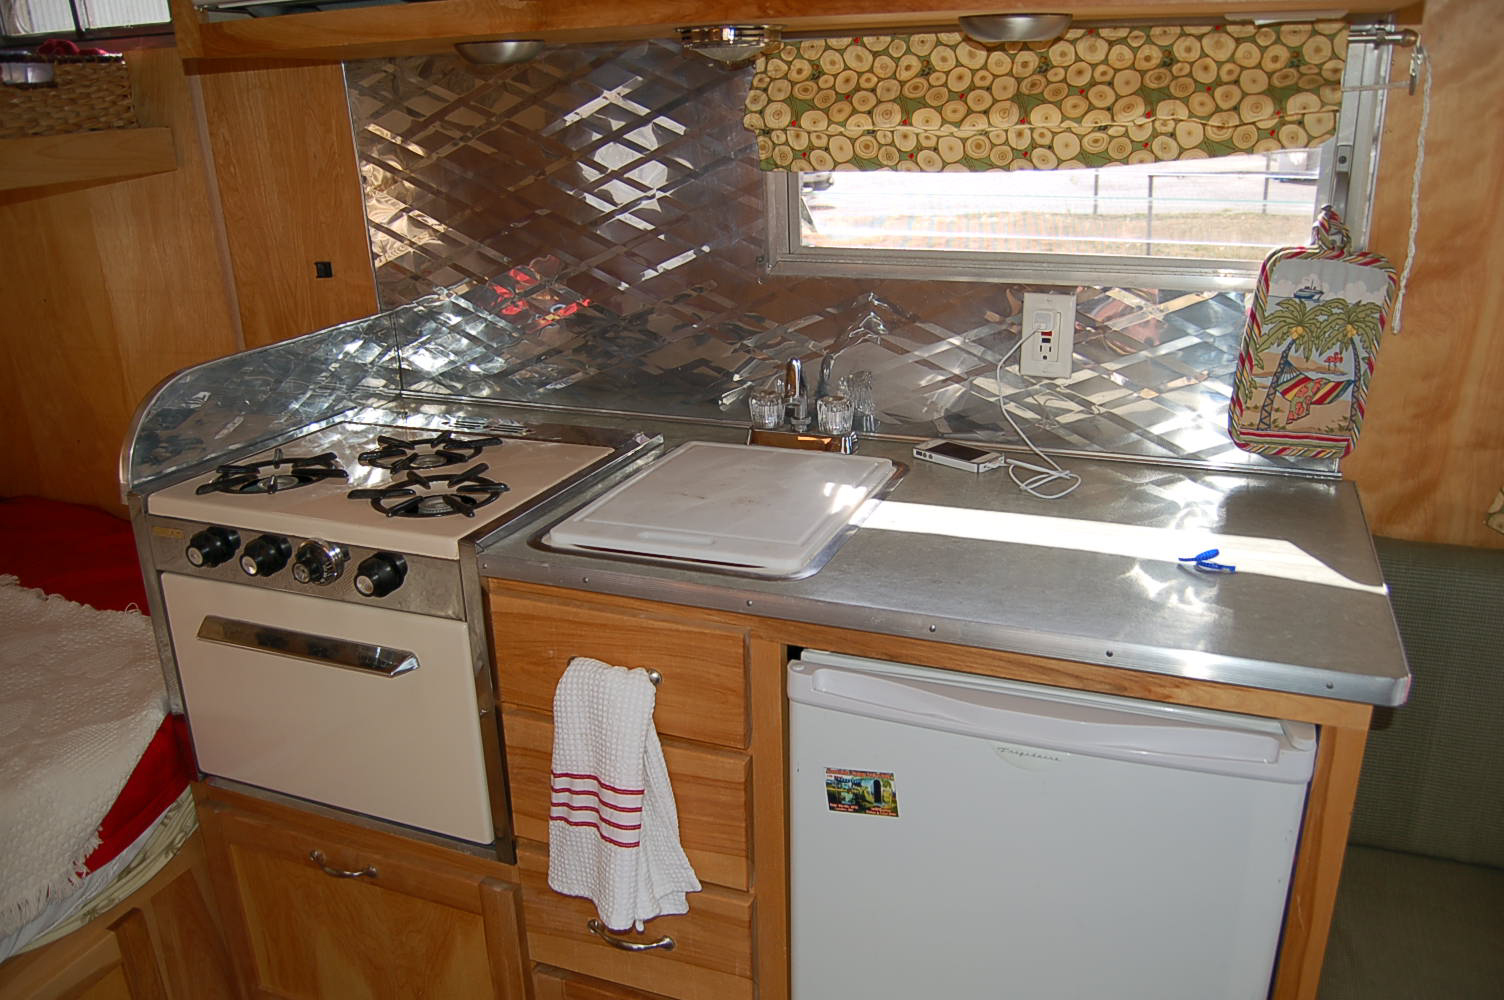 ... Vintage Aloha Trailer Pictures Rv Kitchen Cabinets Beautiful Kitchen  Countertop Stove And Cabinets In Vintage Aloha ...